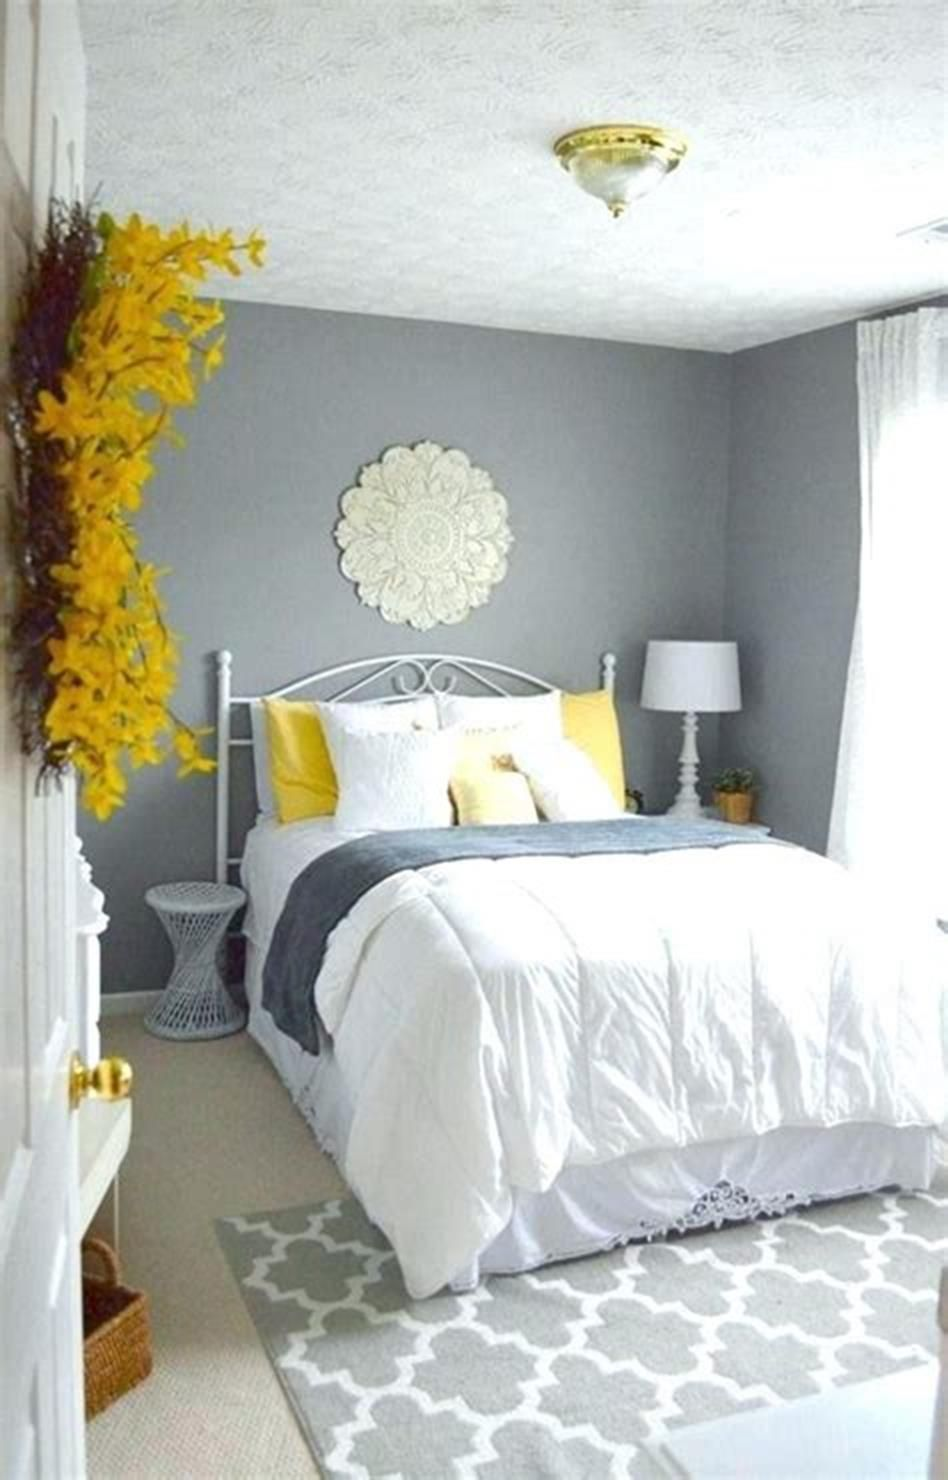 55 Amazing Small Master Bedroom Decorating Design Ideas On A Budget 51 Yellow Bedroom Decor Grey Room Decor Grey Bedroom Decor